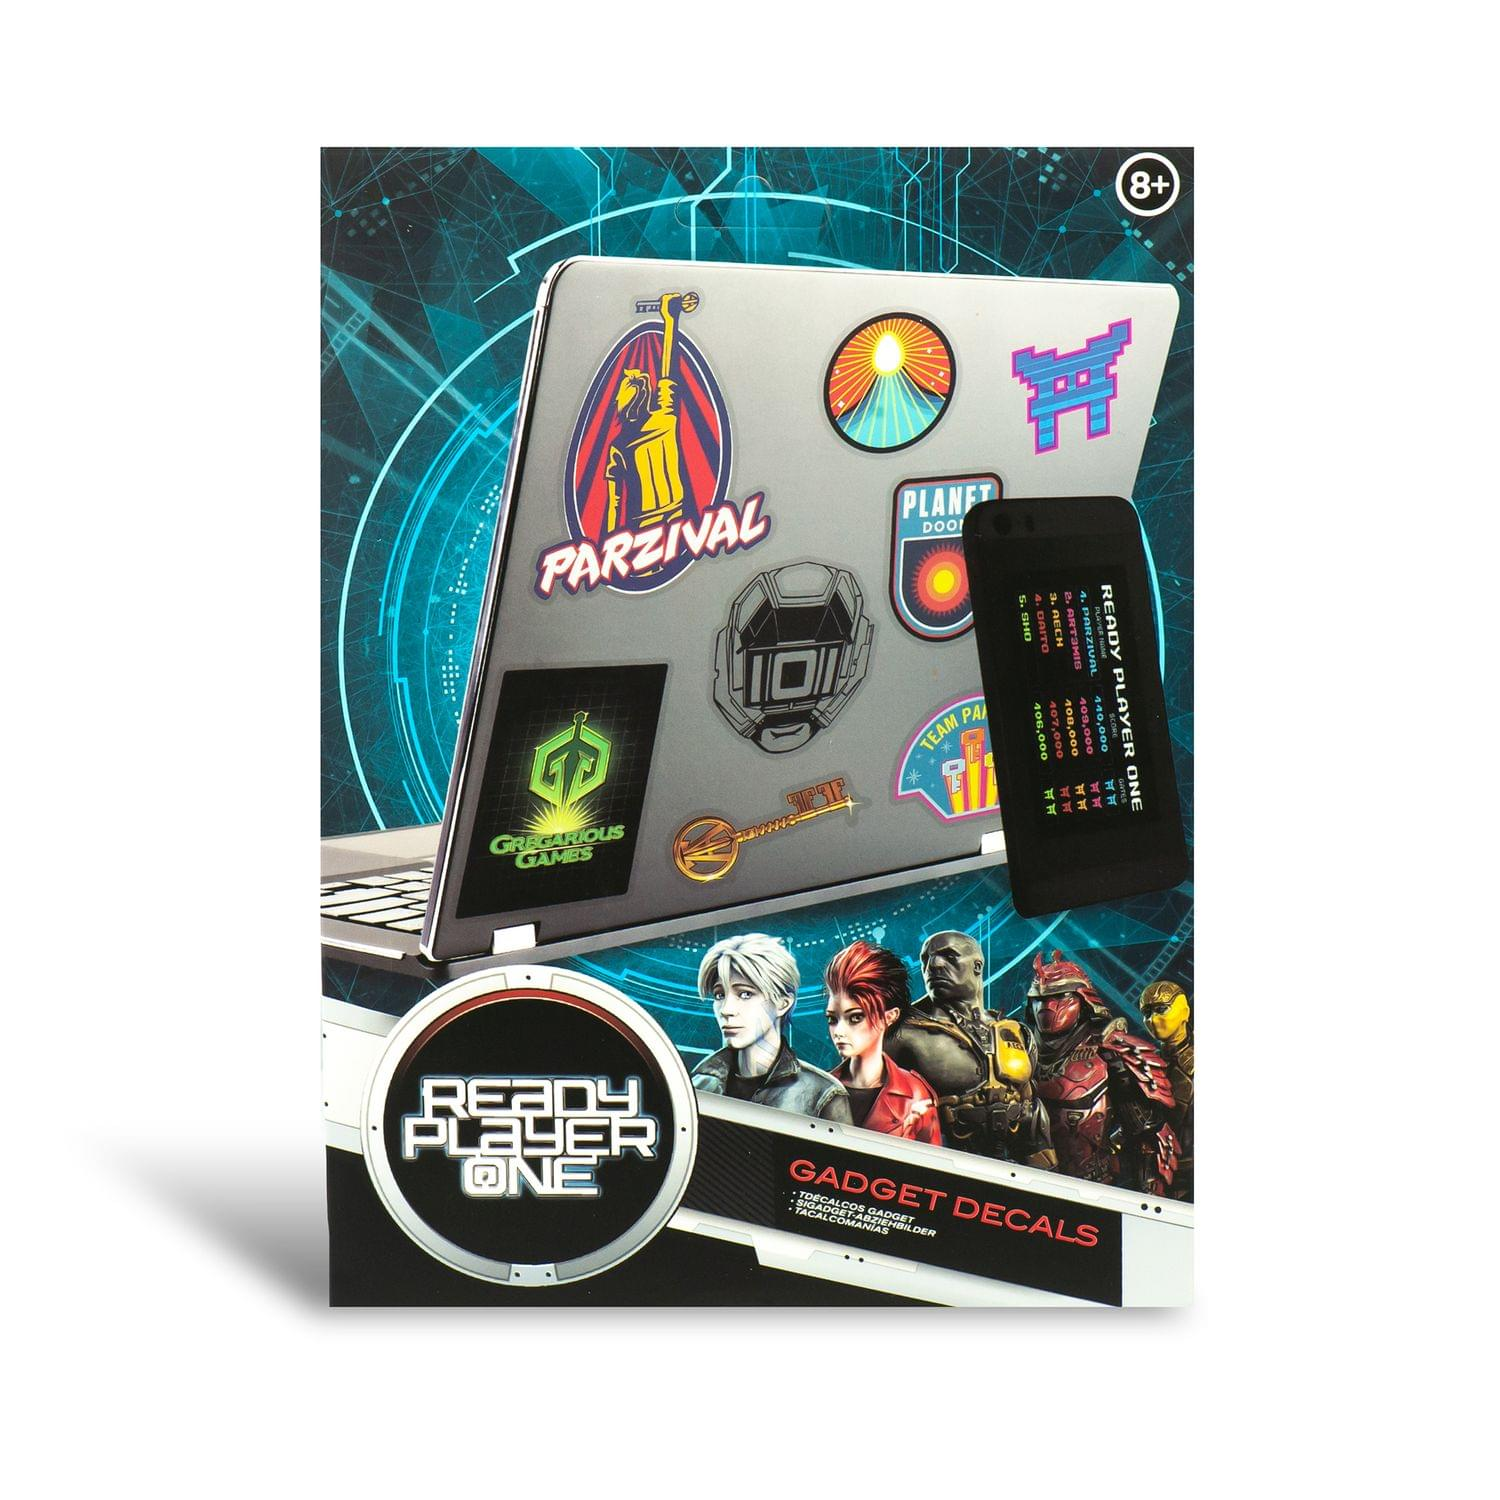 Ready Player One Vinyl Gadget Decal Sticker Pack - image 1 of 1